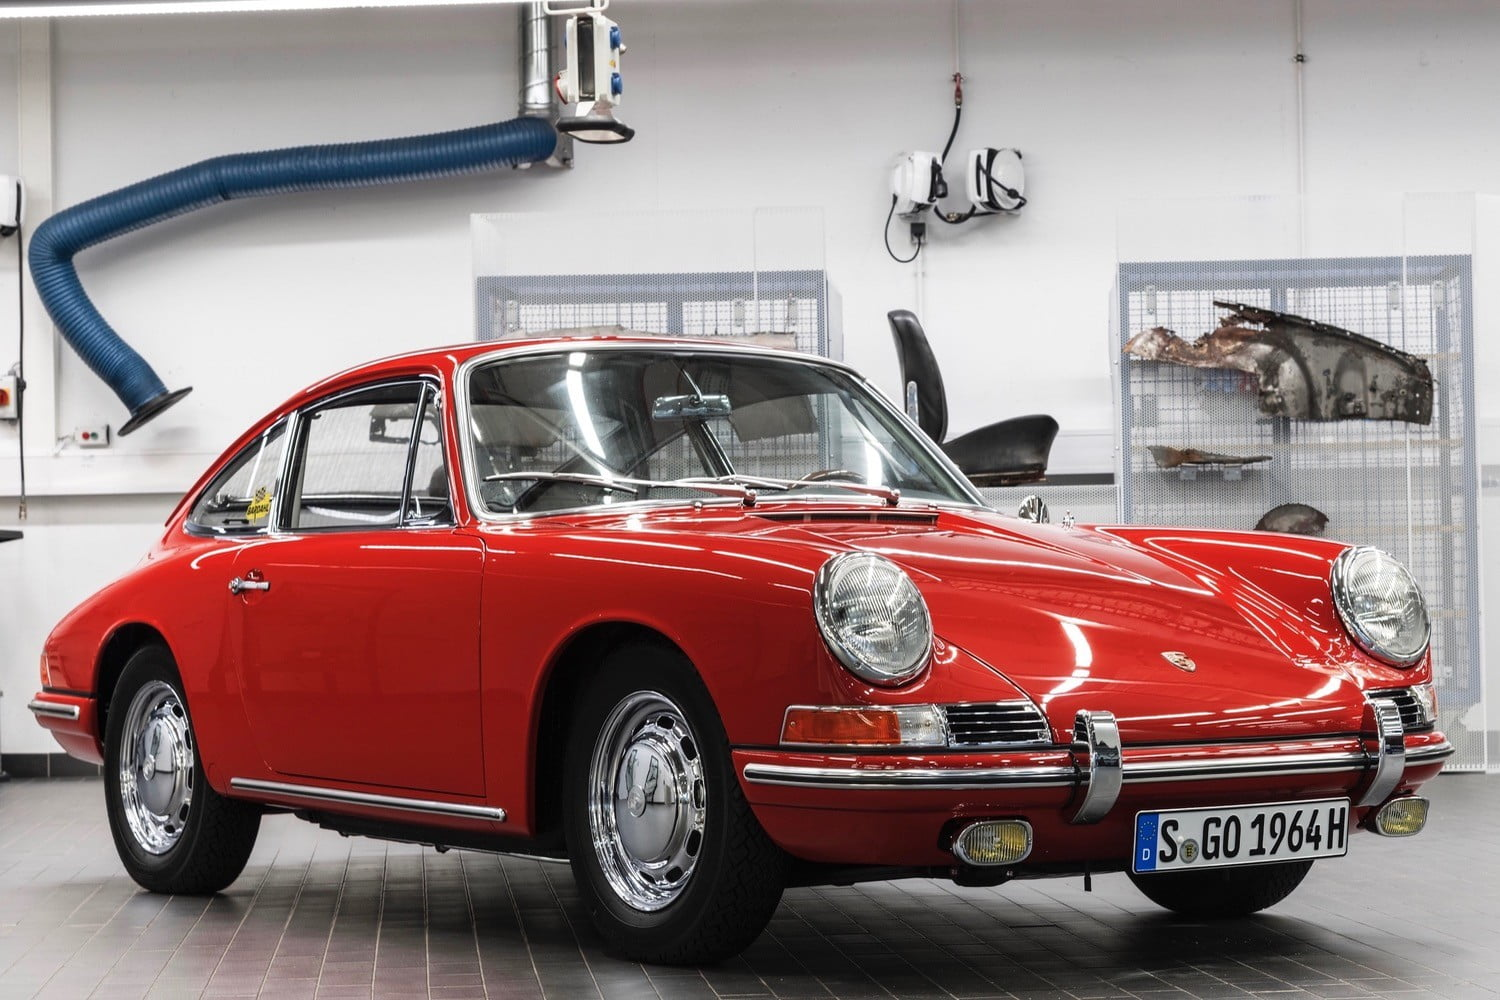 How did the Porsche 911 get its name? You can thank Peugeot